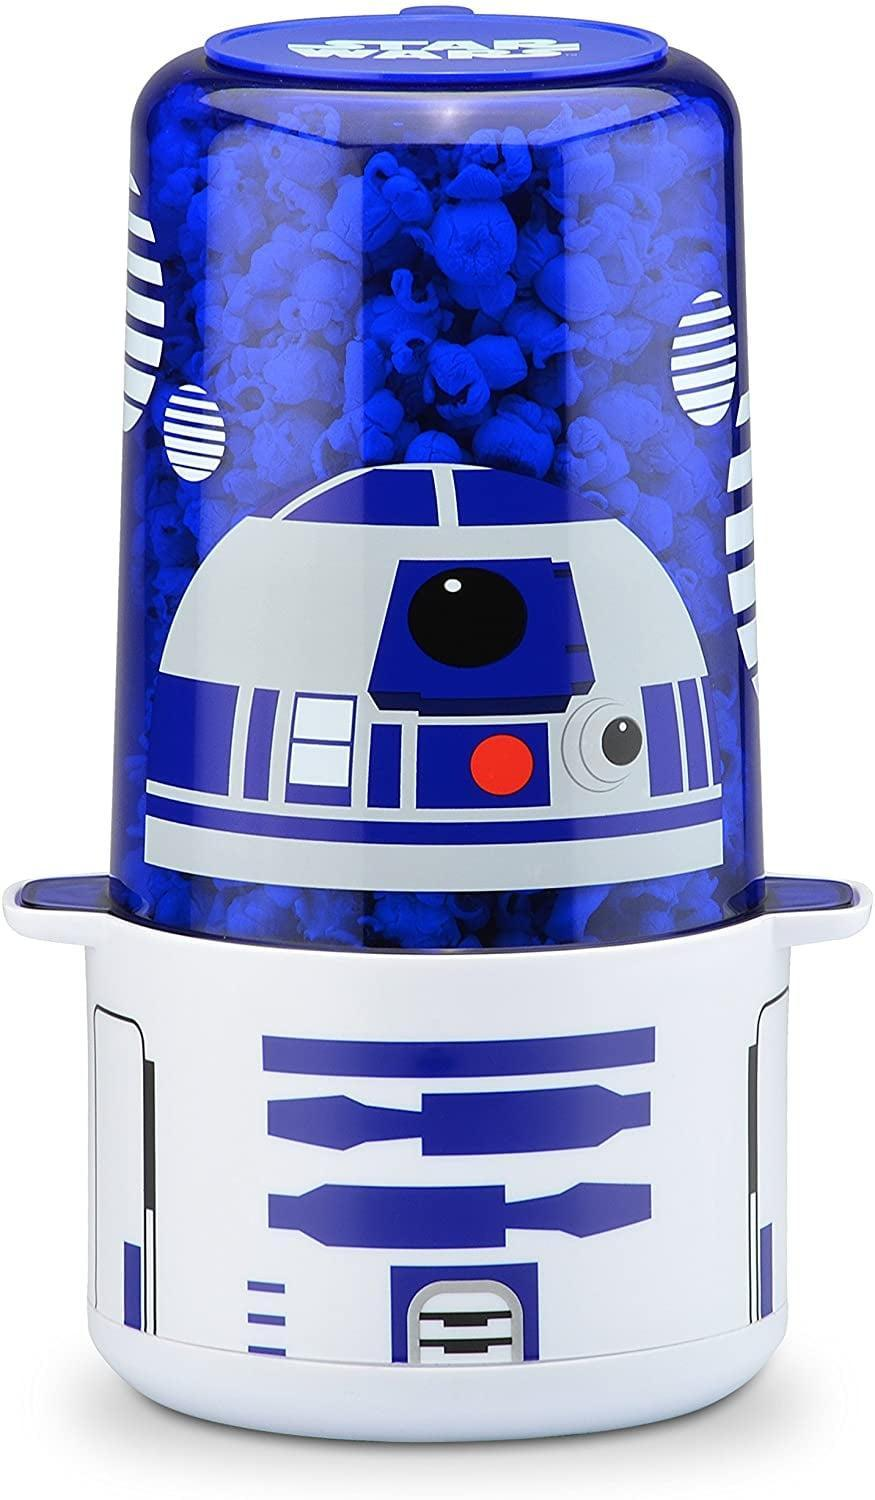 <p>The <span>Star Wars R2-D2 Mini Stir Popcorn Popper</span> ($30) will be your best friend for movie night.</p>